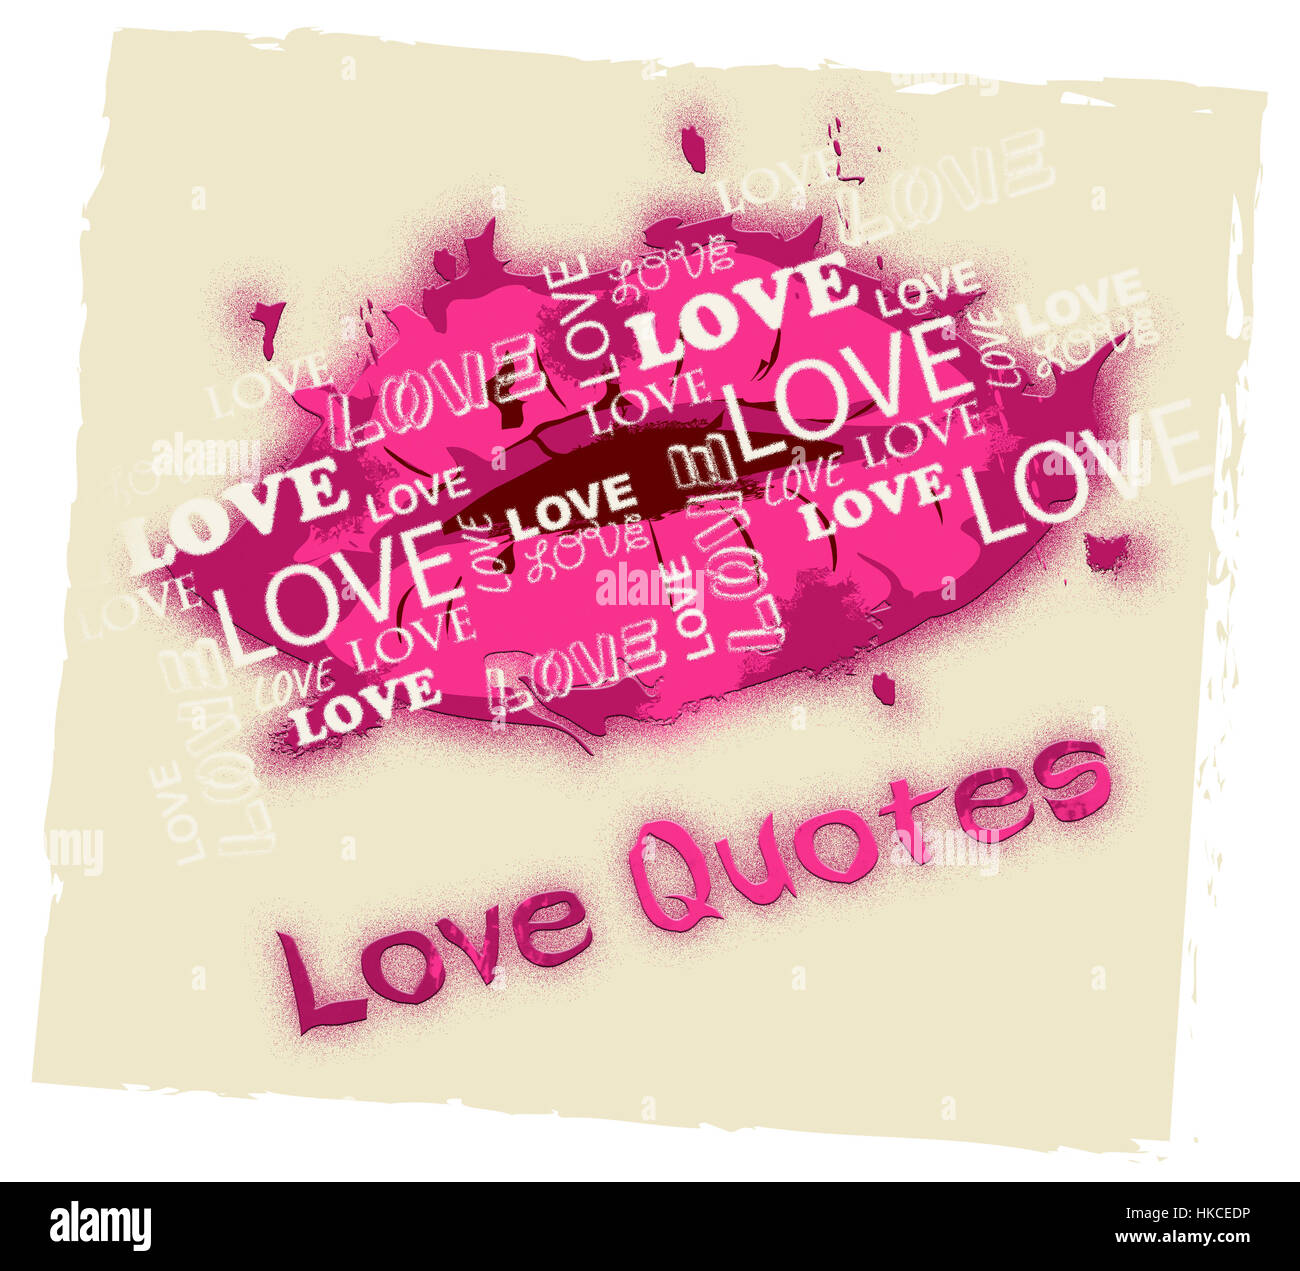 Free Love Quotes Love Quotes Lips Shows Loving Inspiration And Affection Stock